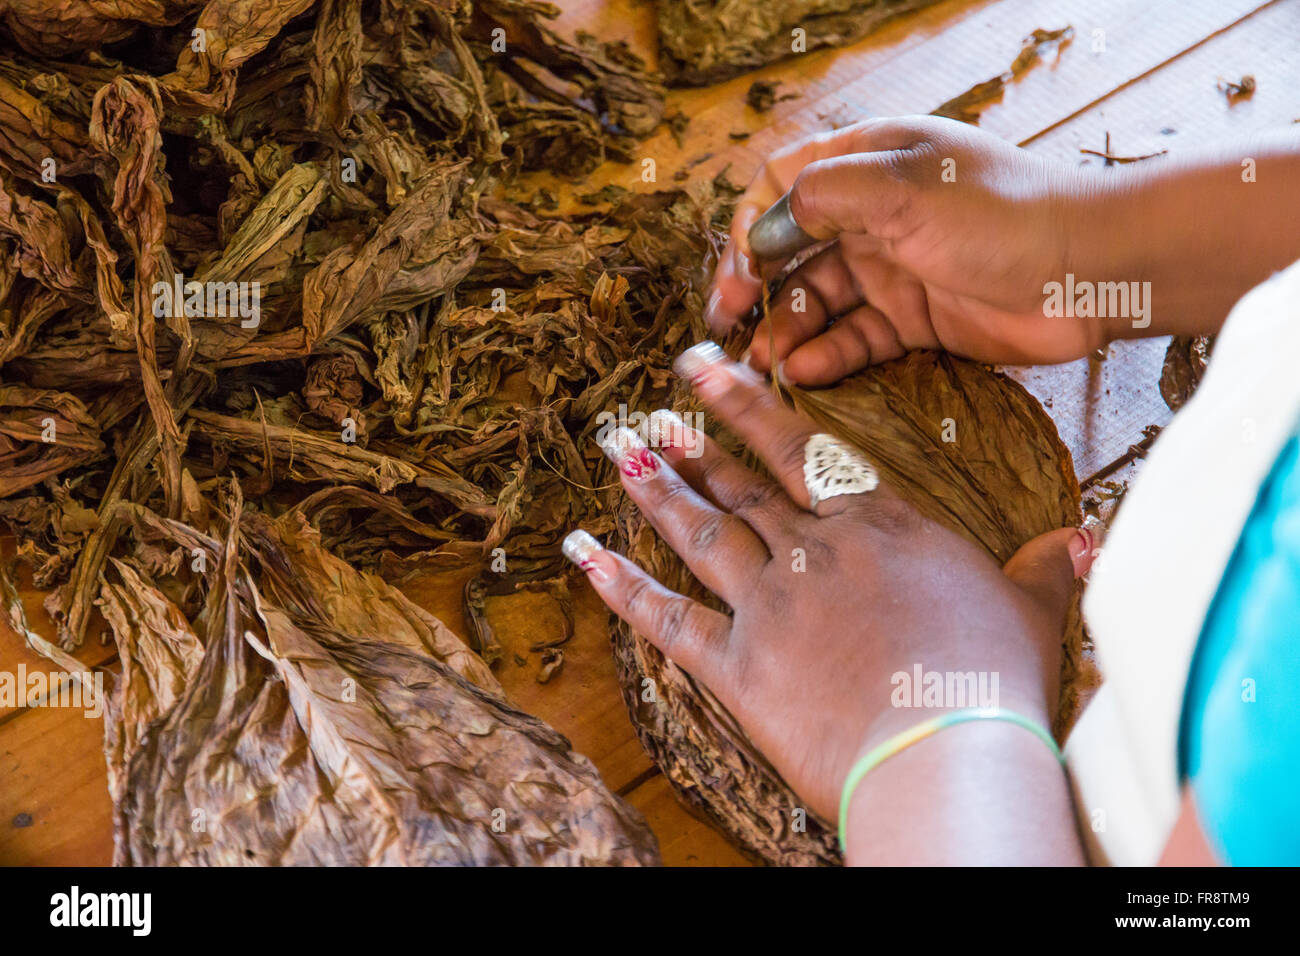 Cuba, Vinales Valley. Known as the tobacco producing region of Cuba. Workers de-stem the tobacco leaves. - Stock Image